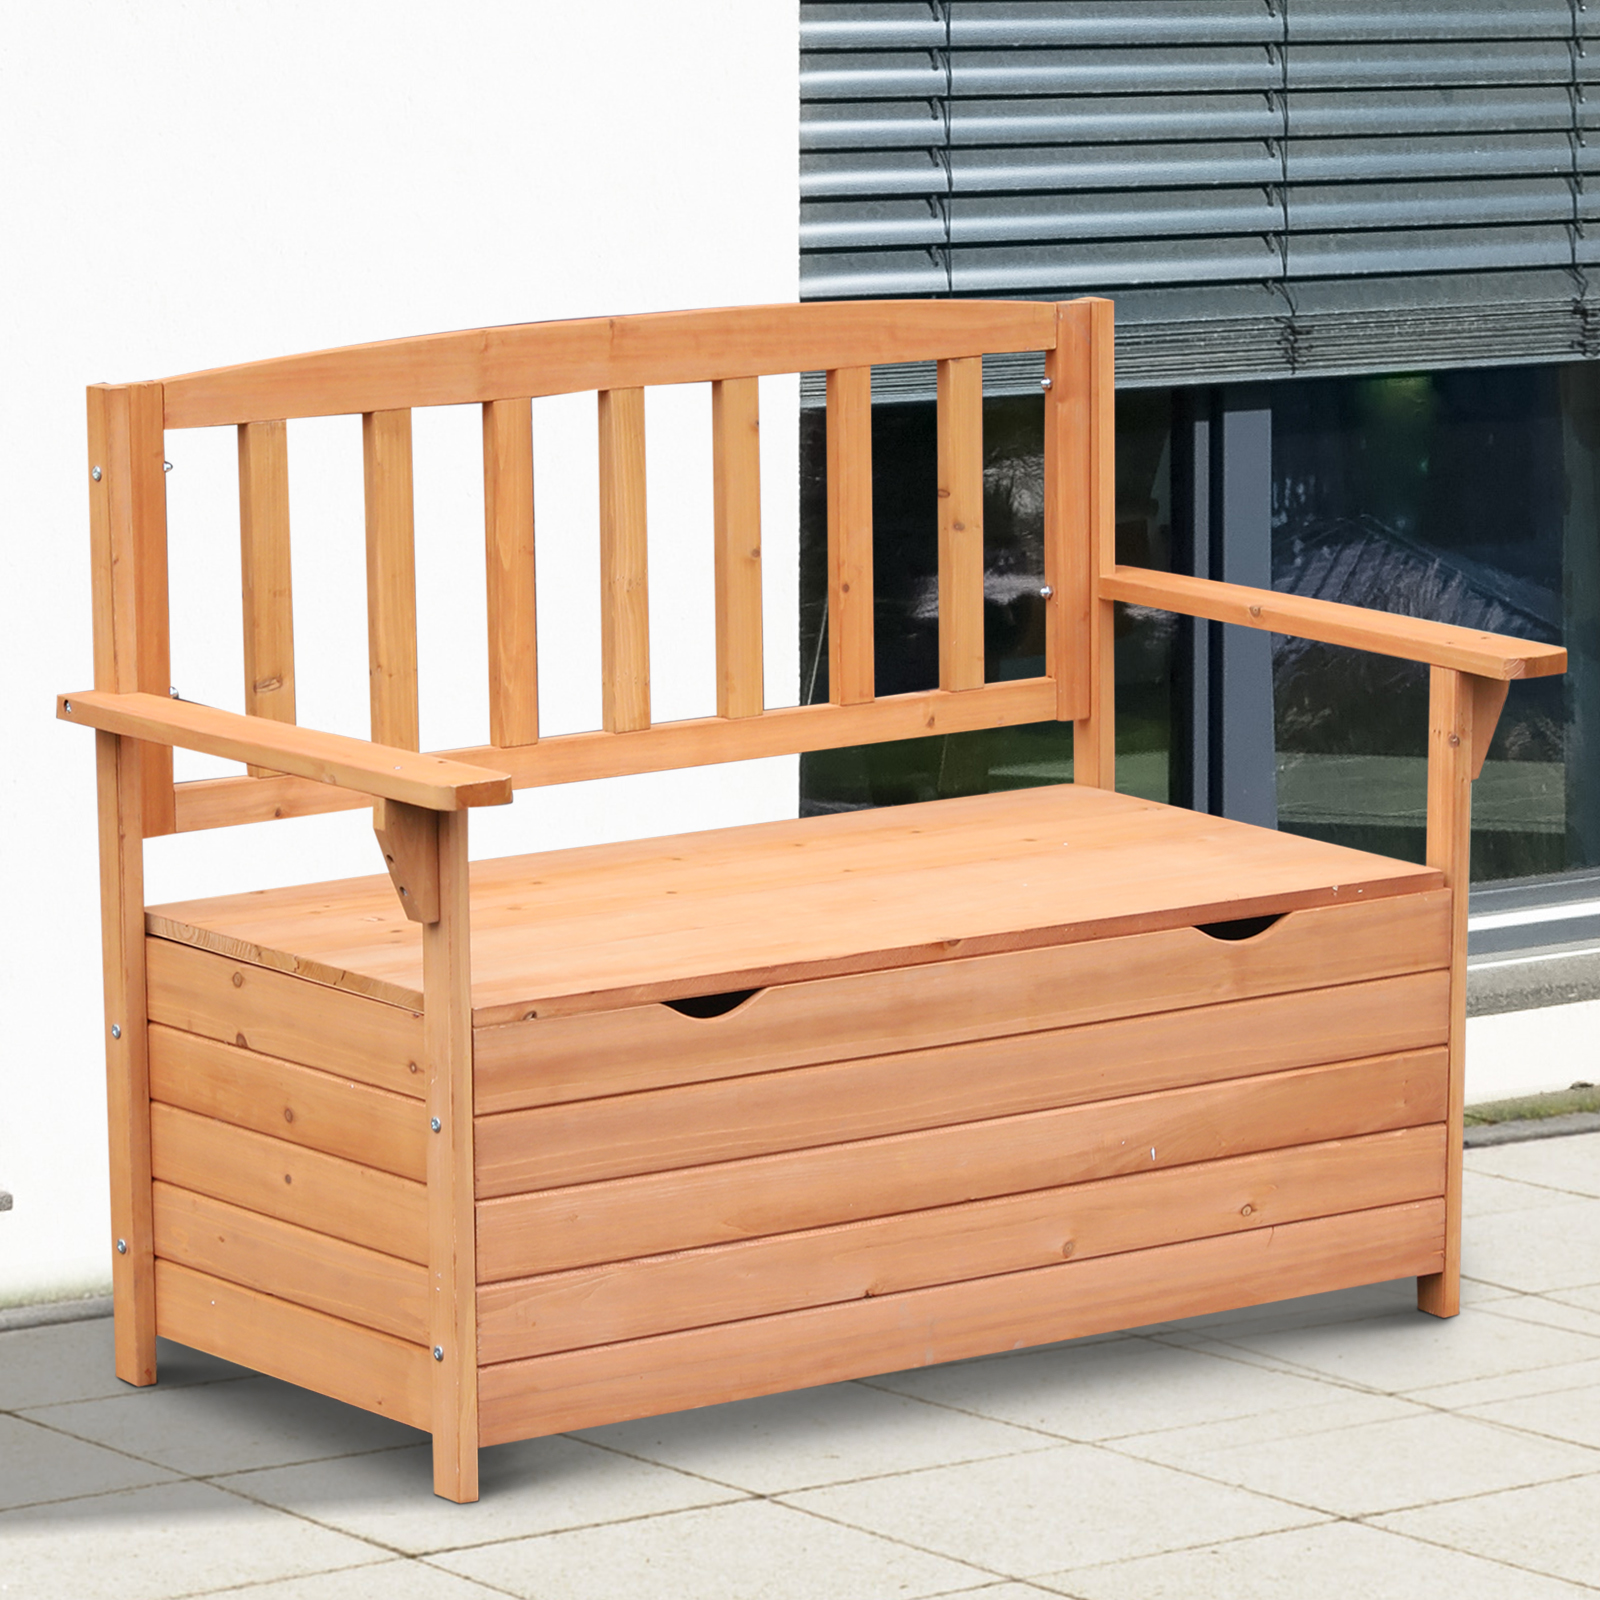 Outsunny Outdoor Garden Storage Bench Patio Box All Weather Deck Fir